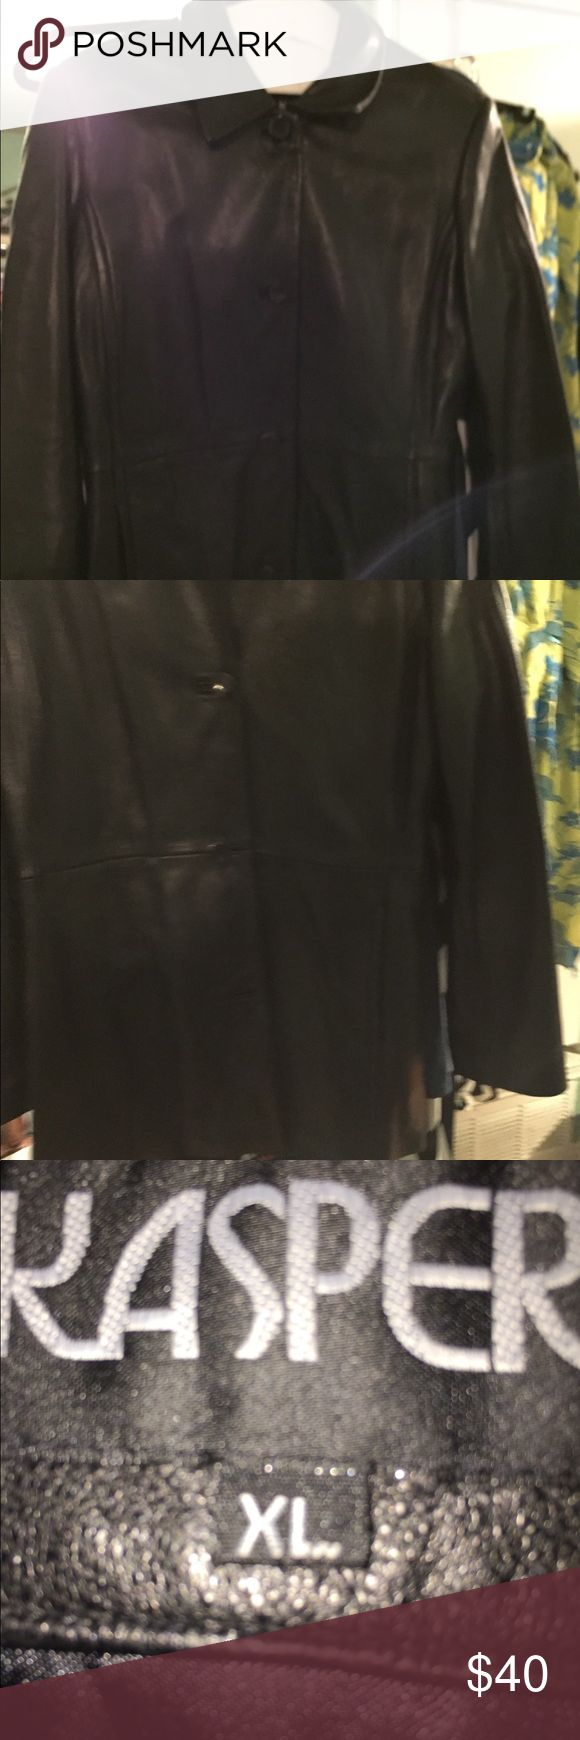 """Kasper Leather Coat This coat is beautiful with no tears .  It is lined  Bust 221/2"""" Arm 25 1/2"""" Length 32 1/2 This is an xl but fits more like a large.  There are no tears in it and not only is it buttoned down with 4 buttons but they are reinforced by buttons.  This is a great buy. Kasper Jackets & Coats"""